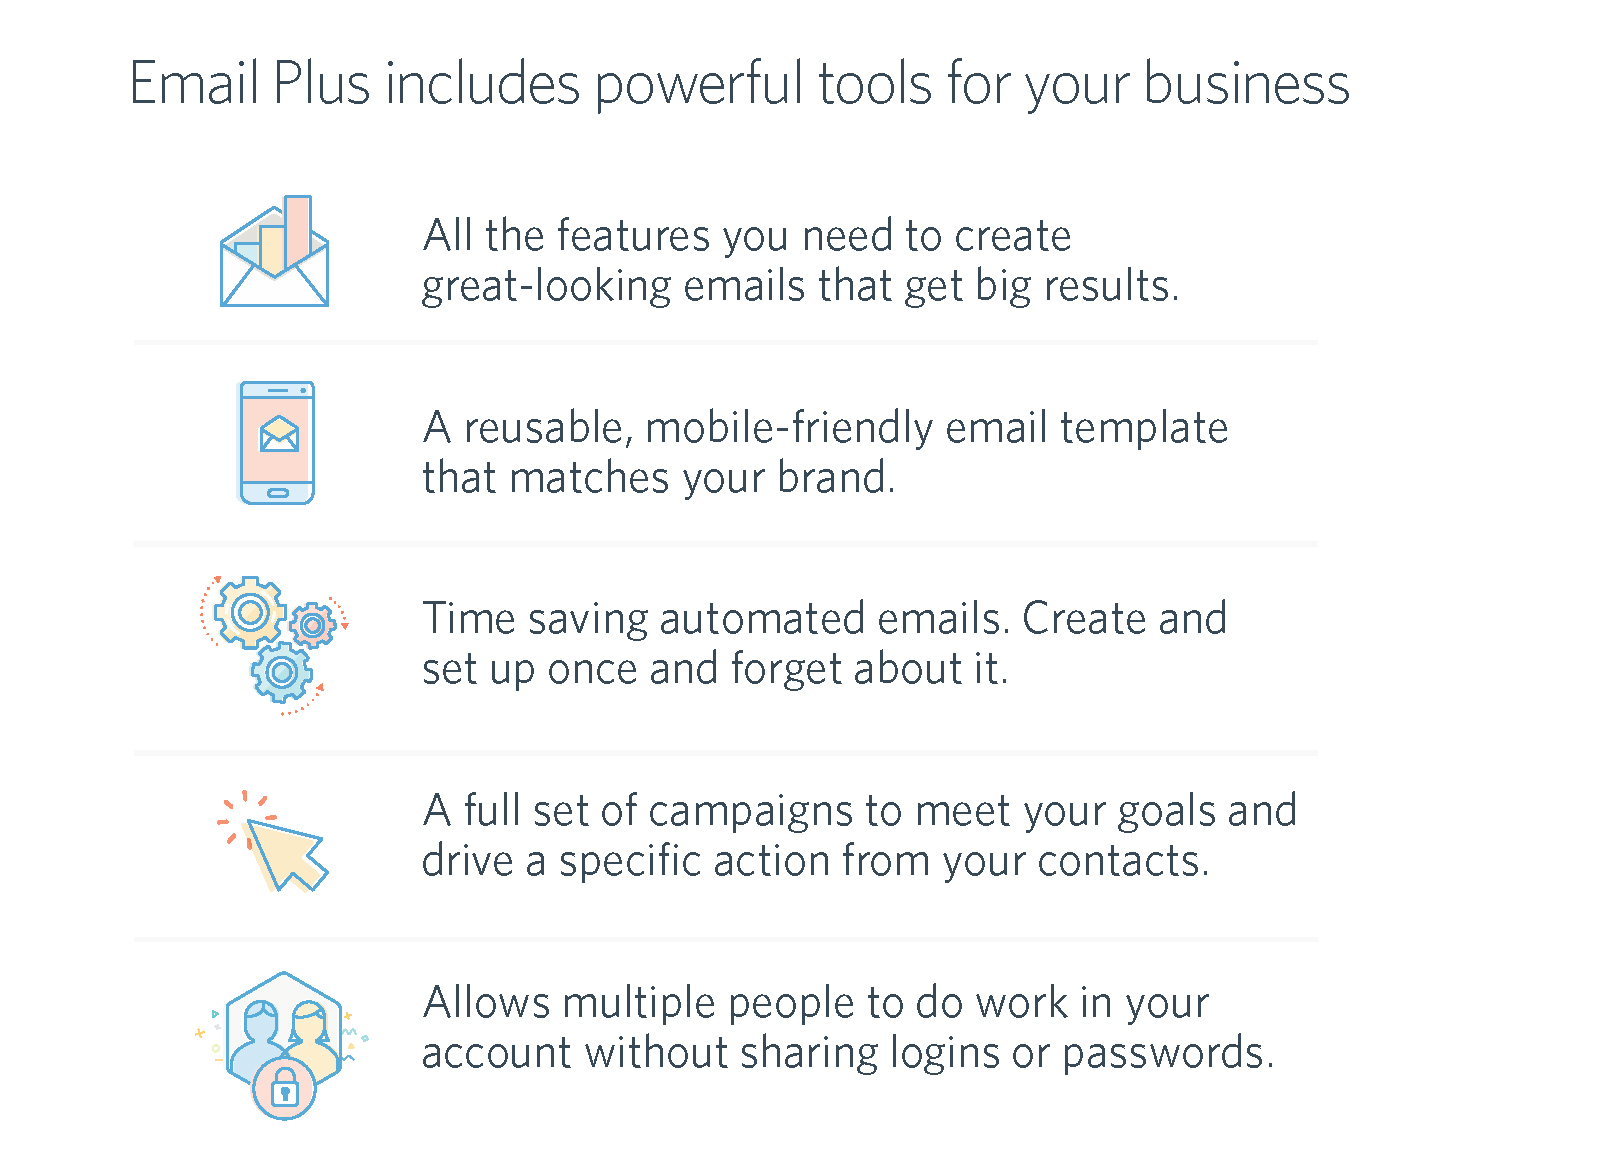 Constant Contact Email Plus Features